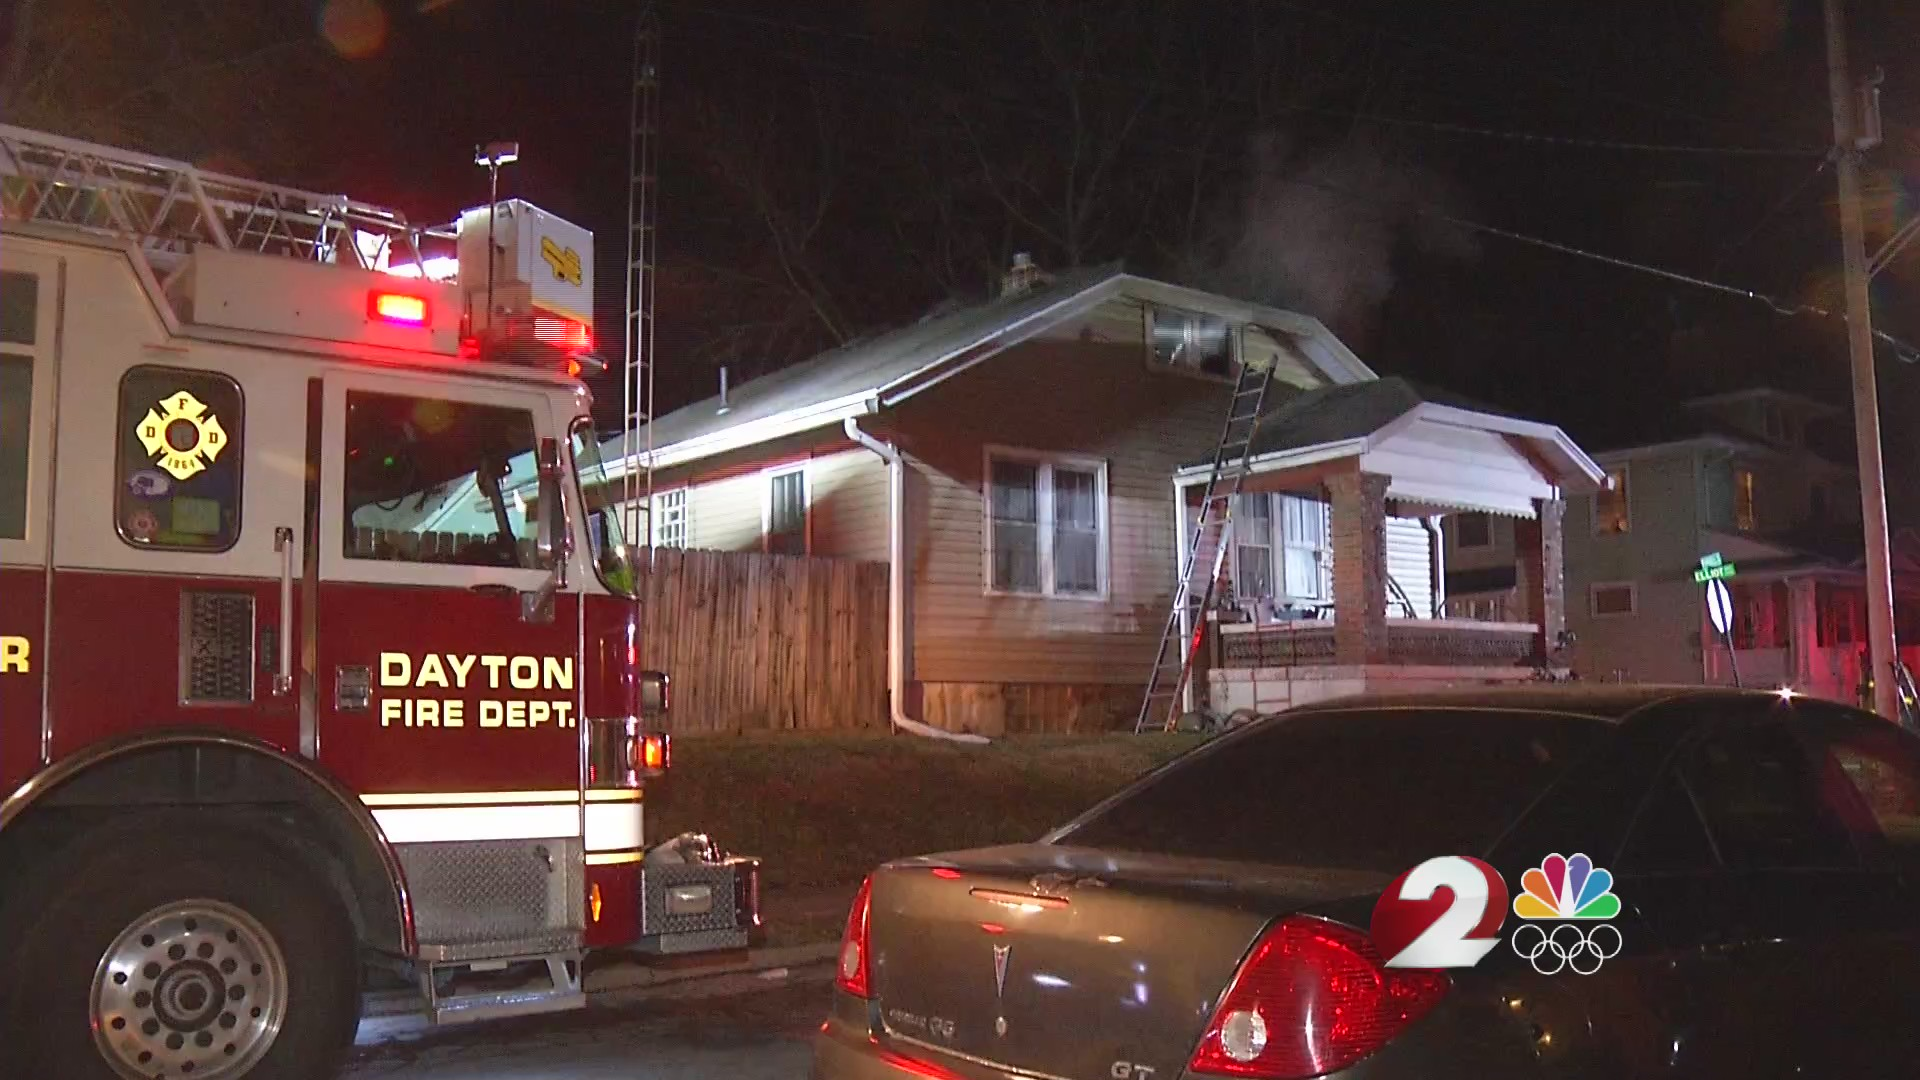 2-20 Dayton House Fire